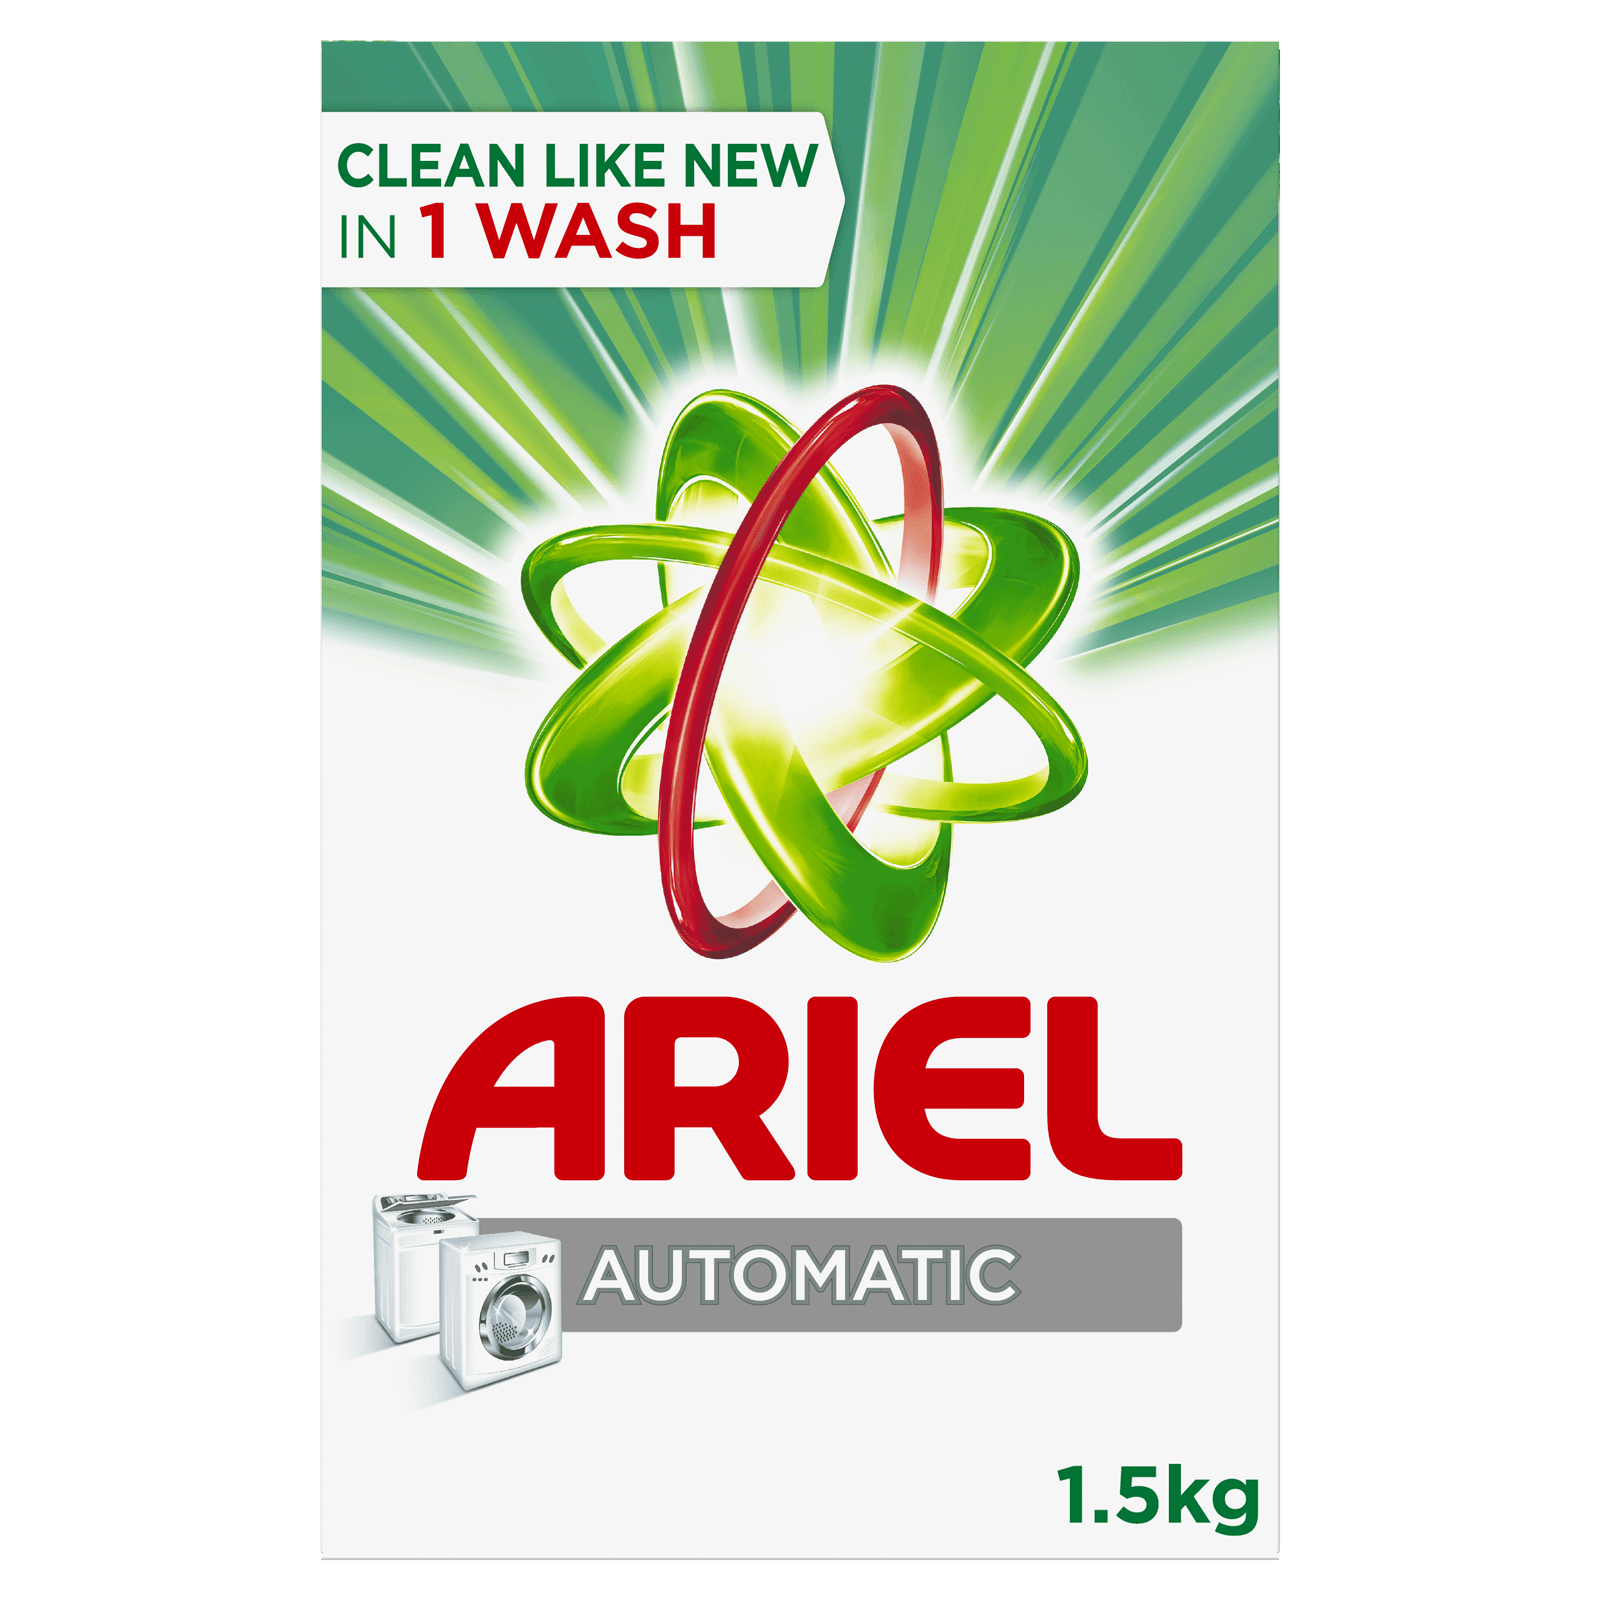 Ariel Automatic Washing Powder Laundry Detergent Original